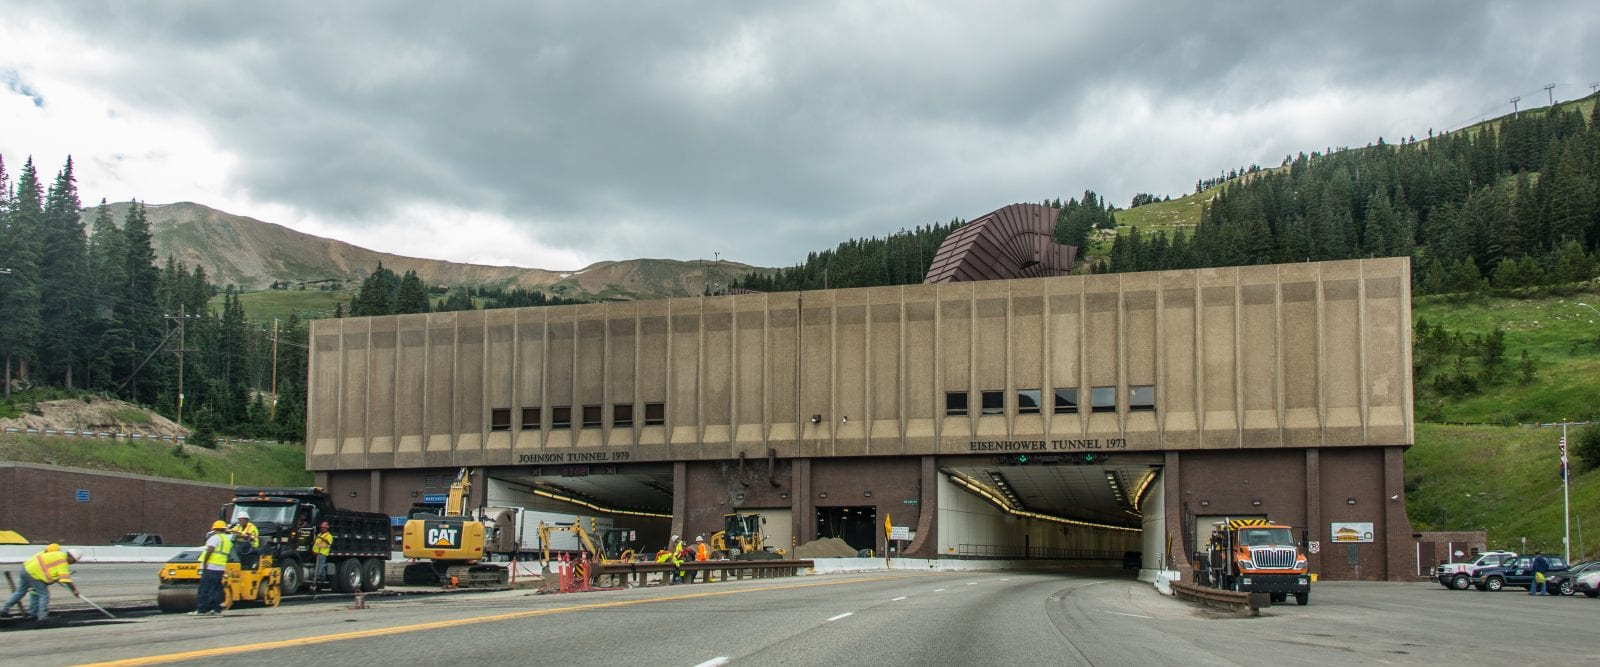 The Dwight Eisenhower Memorial Tunnel, CO